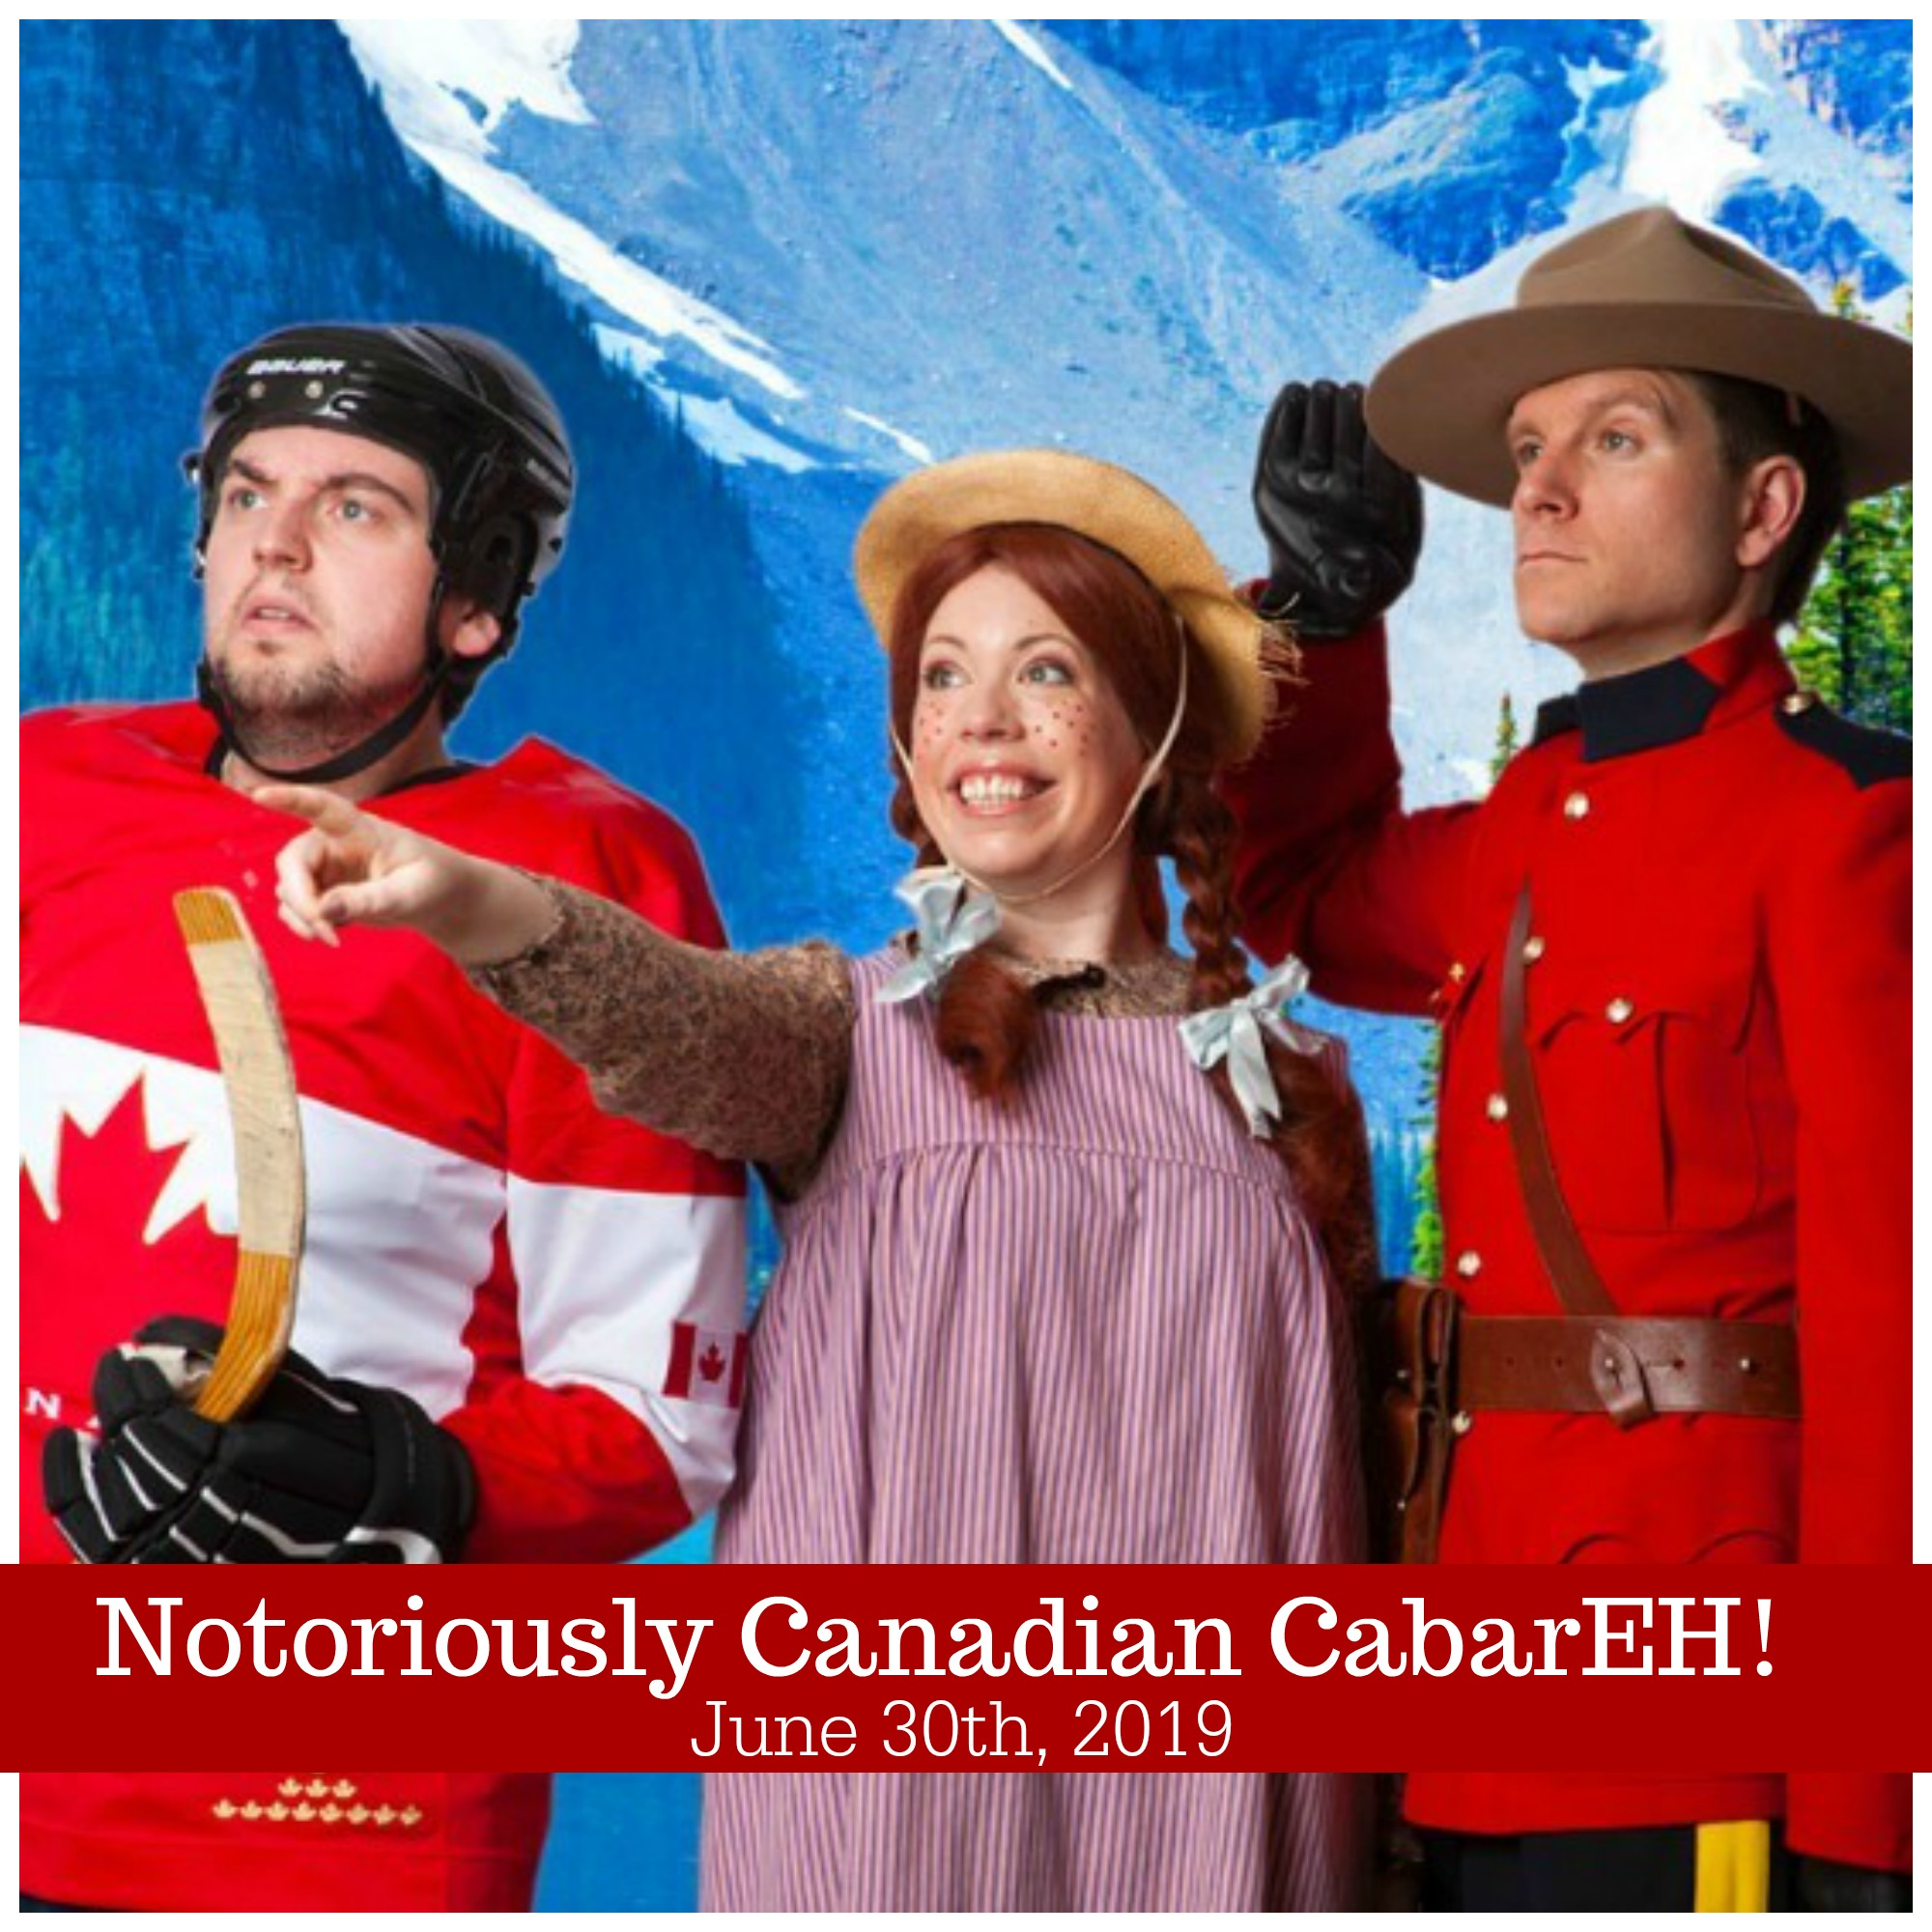 "We've been working on something for the adults this year! Join us in celebrating all things wonderfully Canadian at the ""Notoriously Canadian CabarEH""! Silver donation at the door with proceeds going to the fireworks. Prizes for best Canadian outfits, bands, specials and all things Canadian! More details to follow."